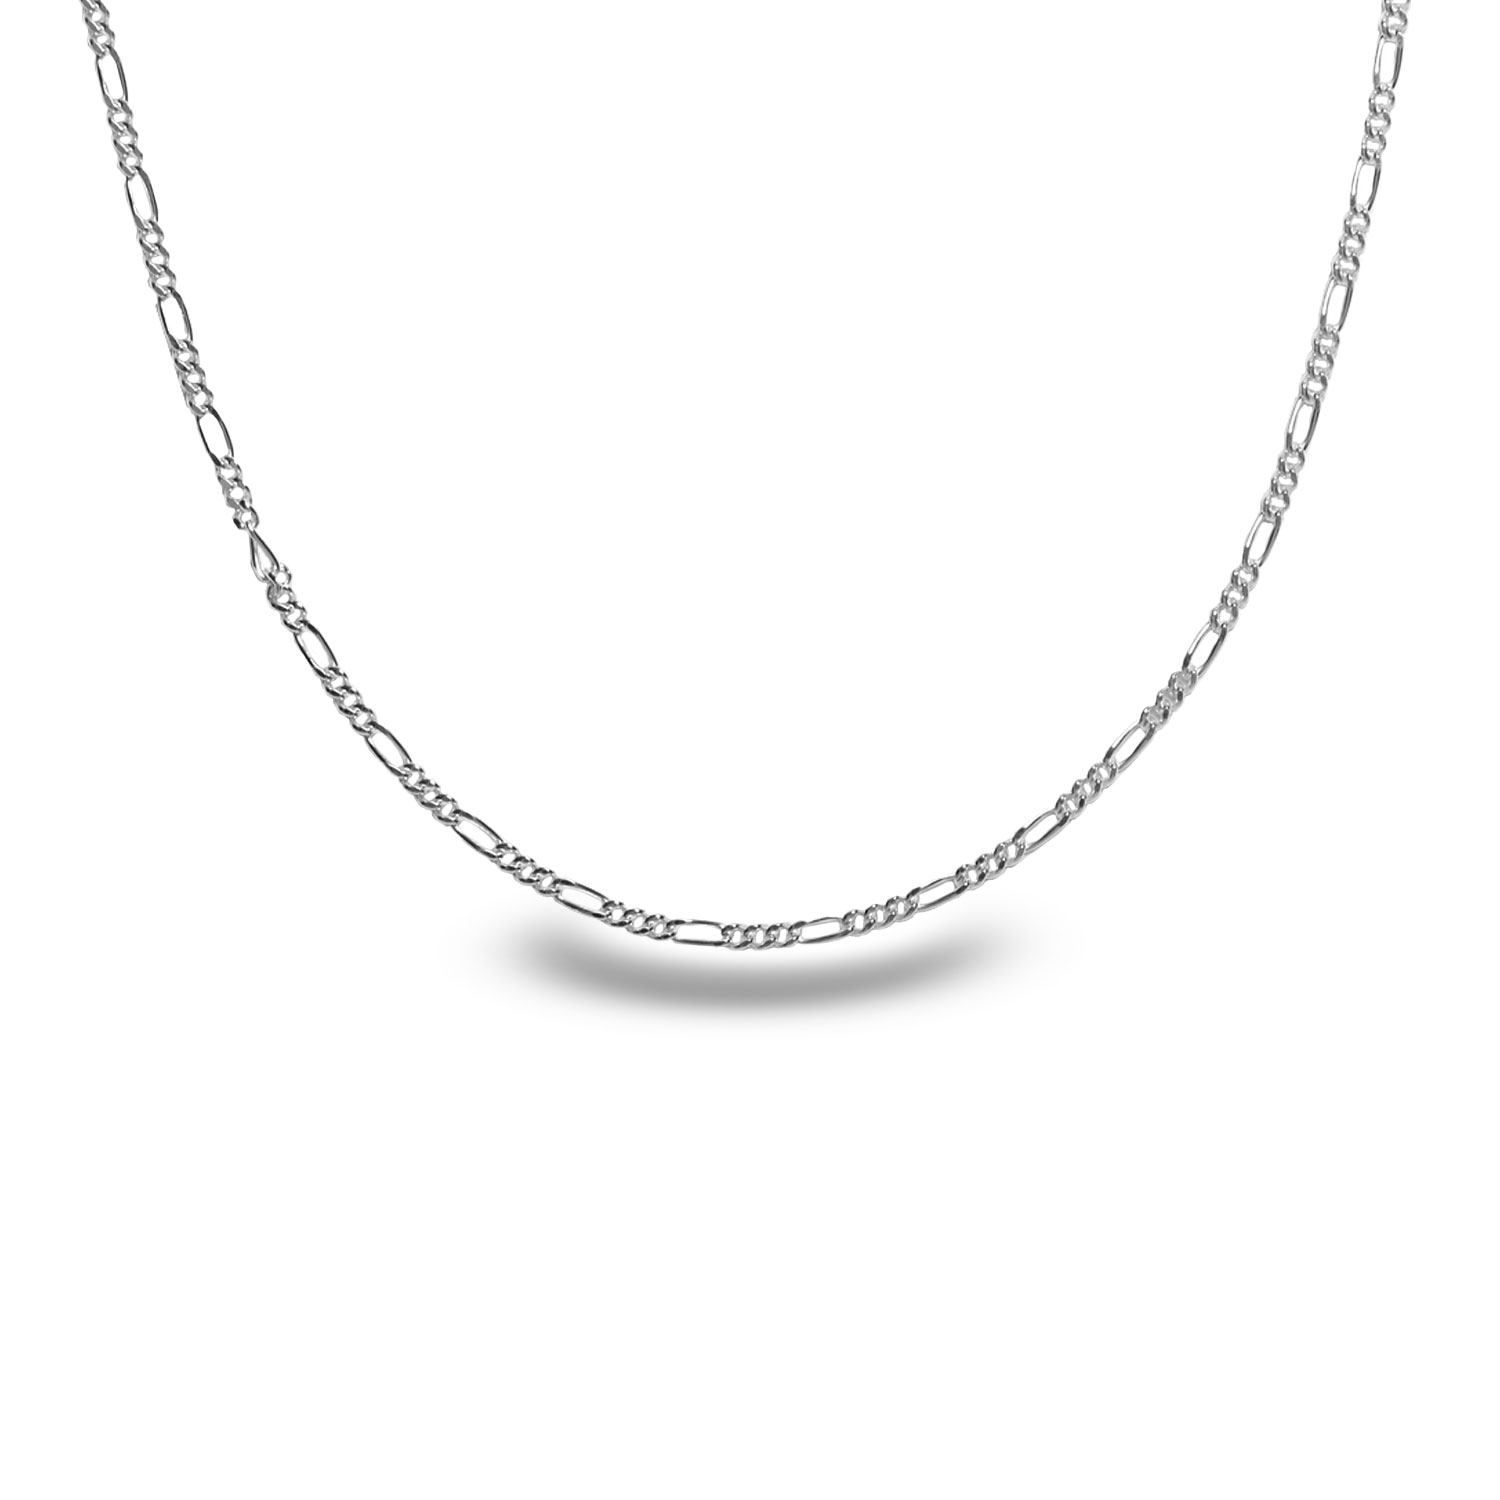 Figaro Sterling Silver Necklace - 24 in.